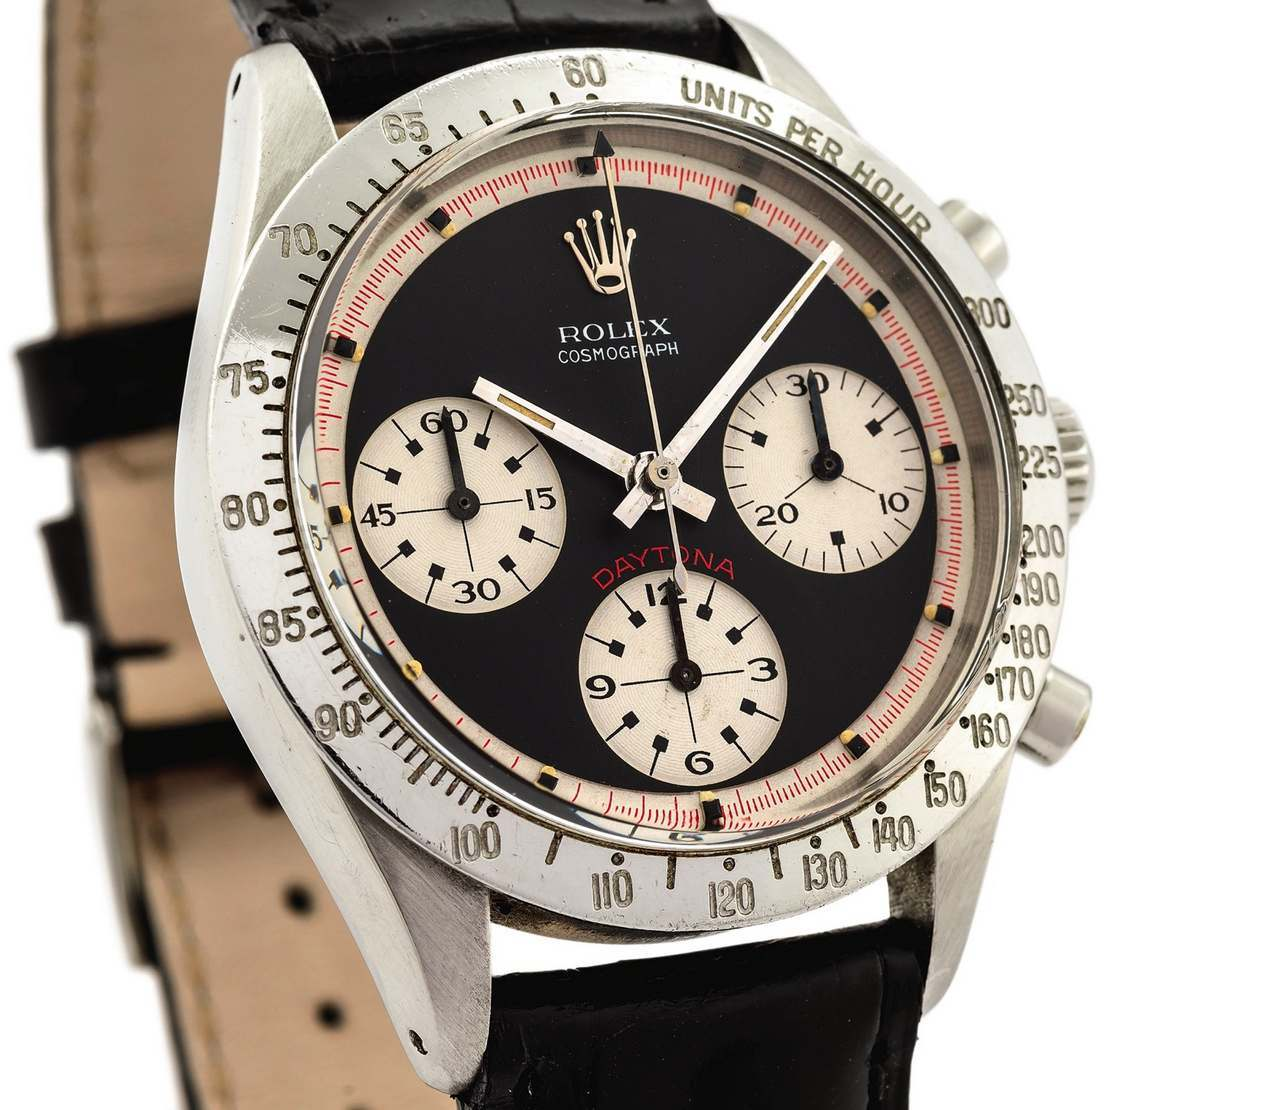 ROLEX REF. 6239 PAUL NEWMAN BLACK DIAL STEEL Rolex, Cosmograph Daytona,No. 1695116, Ref. 6239-source_antiquorum_0-100